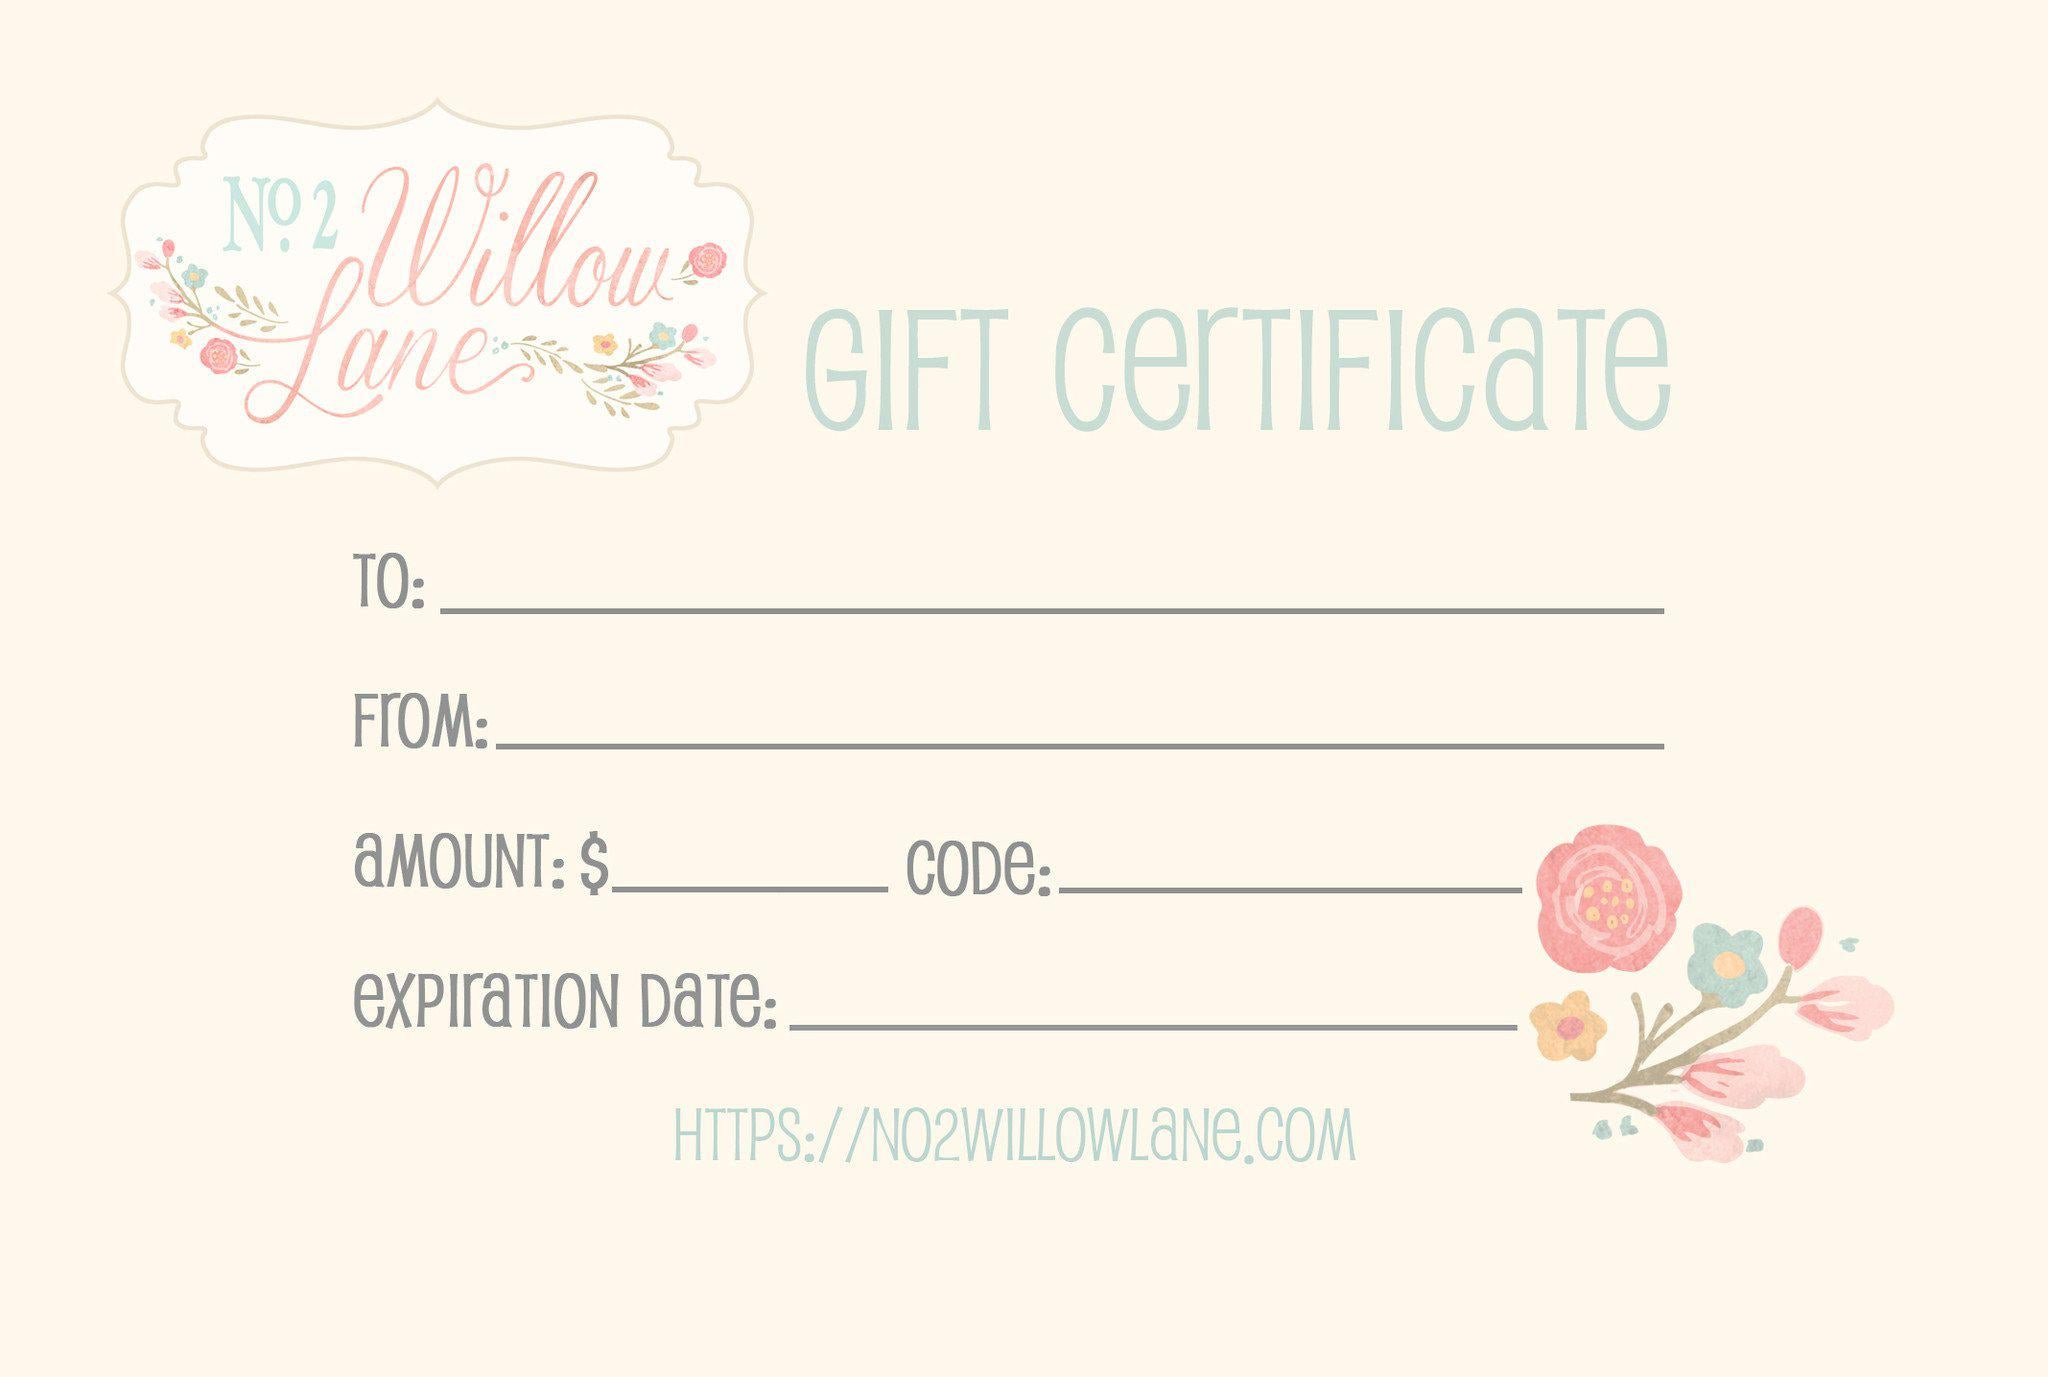 Gift Certificate, Gift Certificate - No. 2 Willow Lane